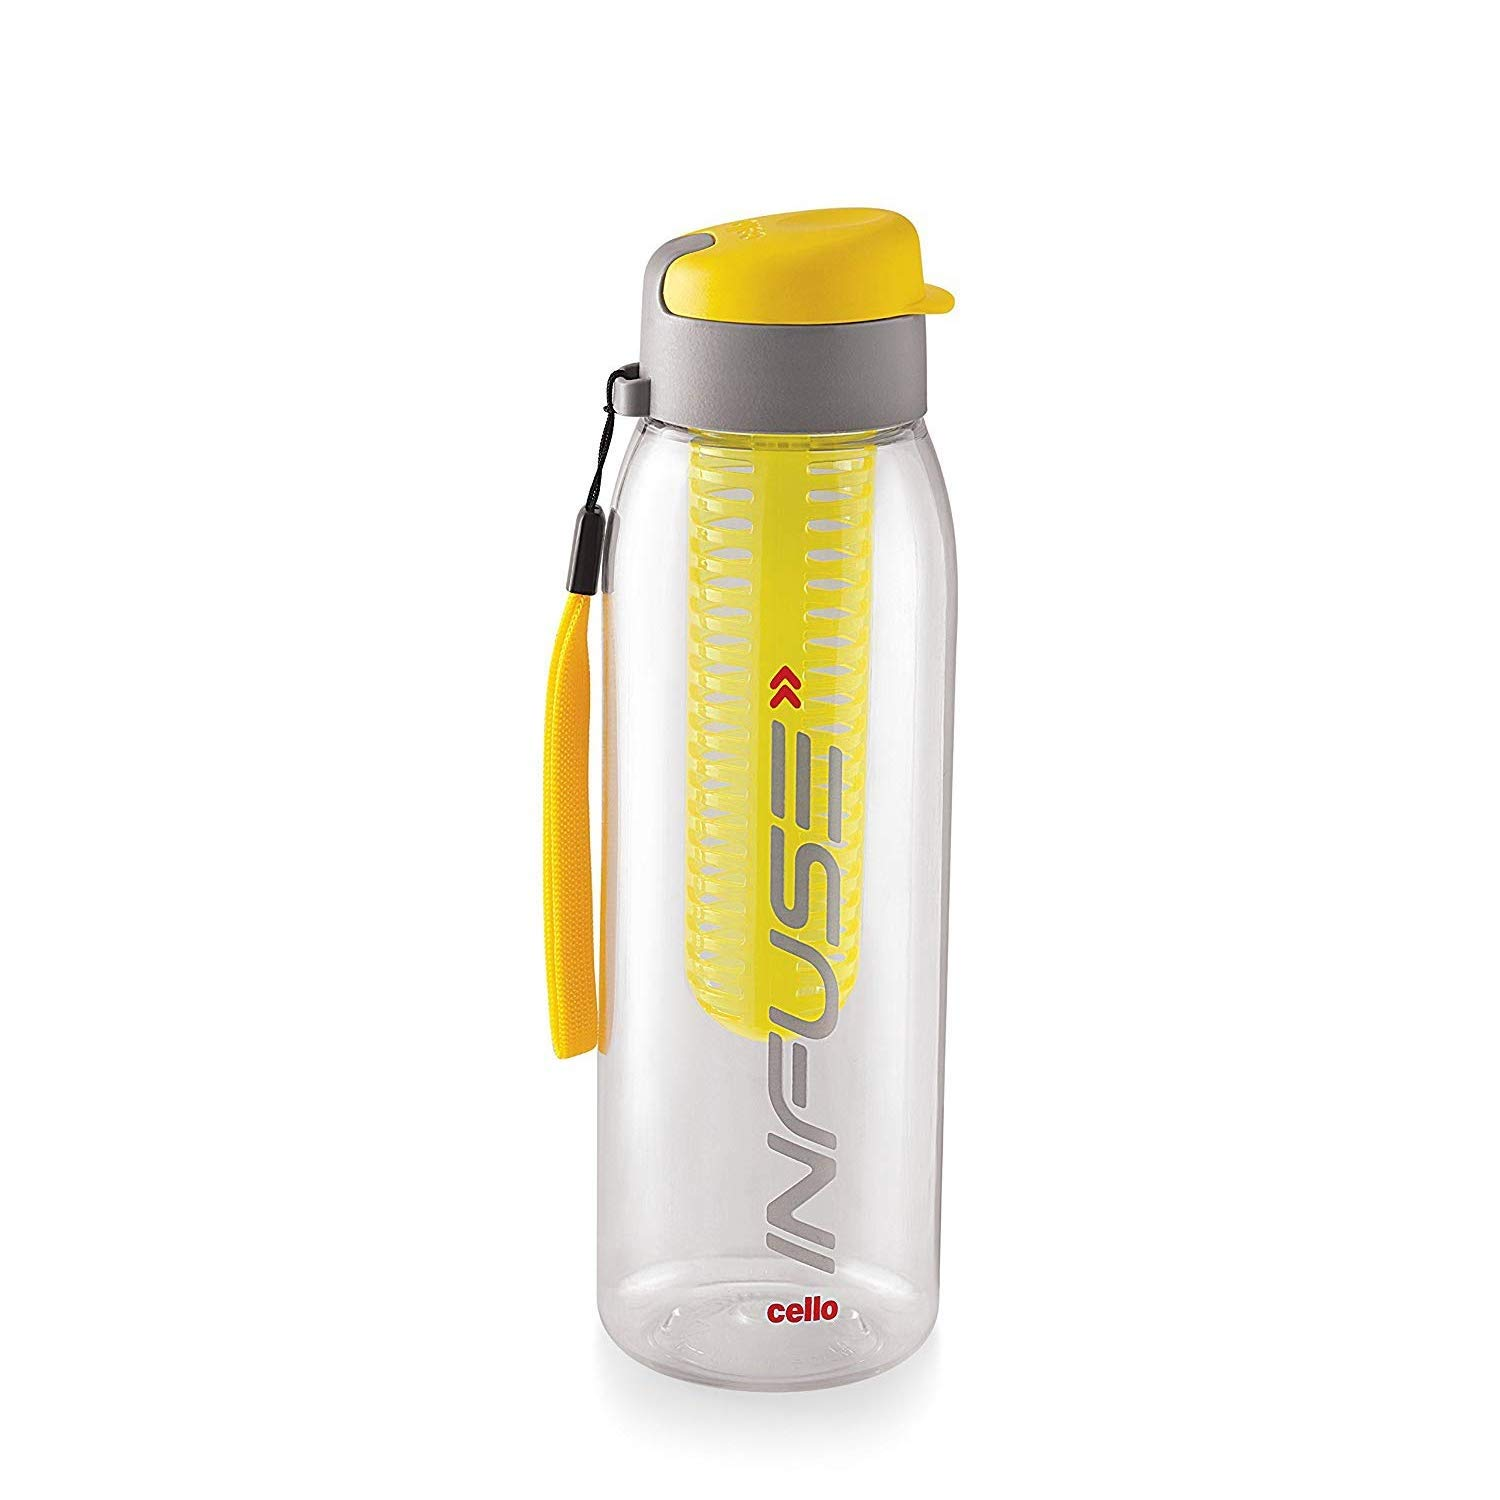 Cello Infuse Plastic Water Bottle, 800 ml, Yellow